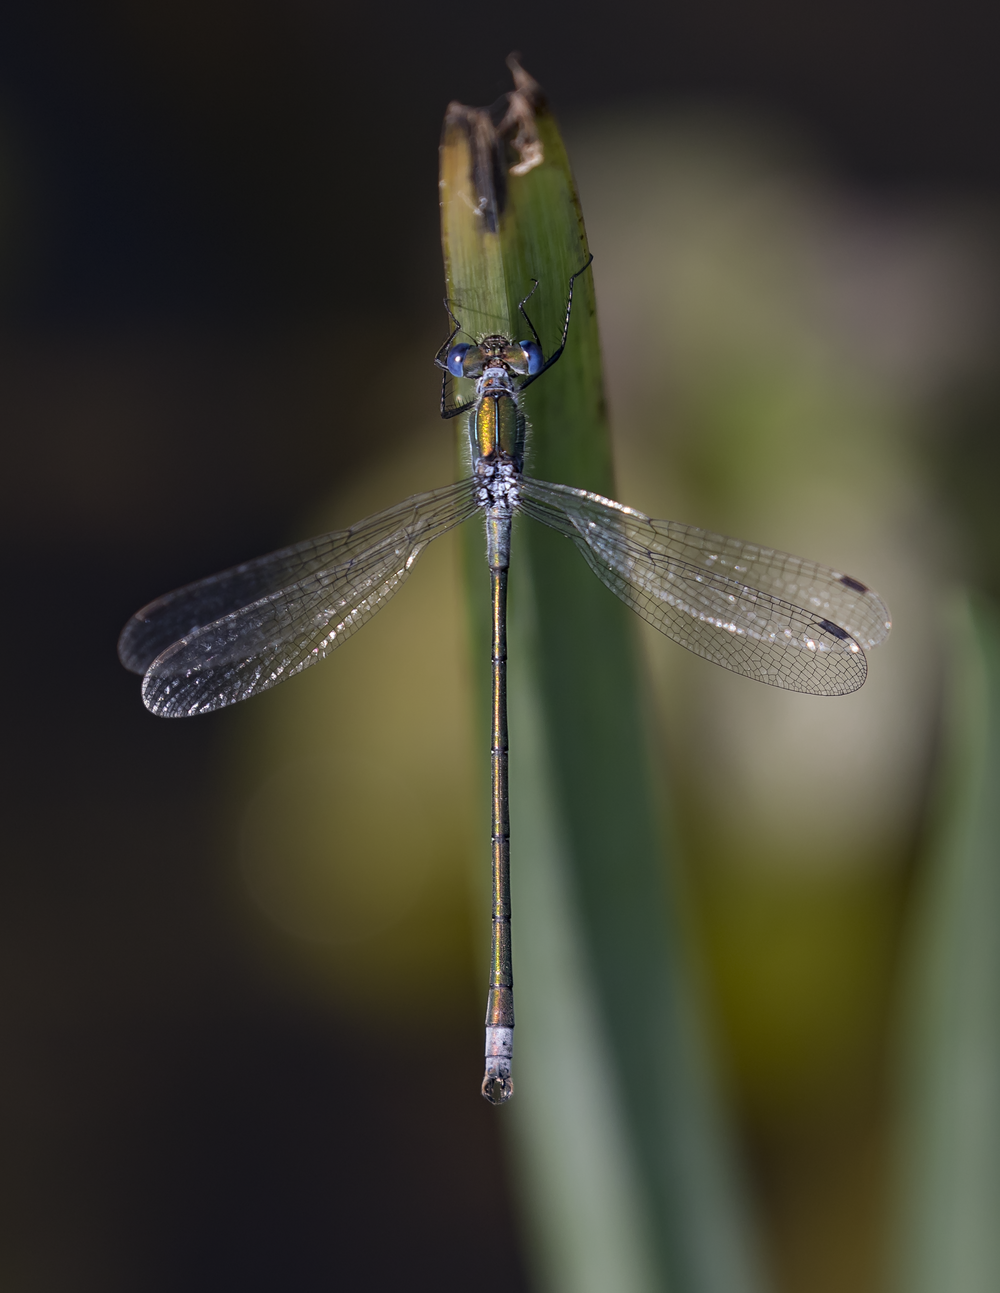 Emerald Damselfly 22nd August.png